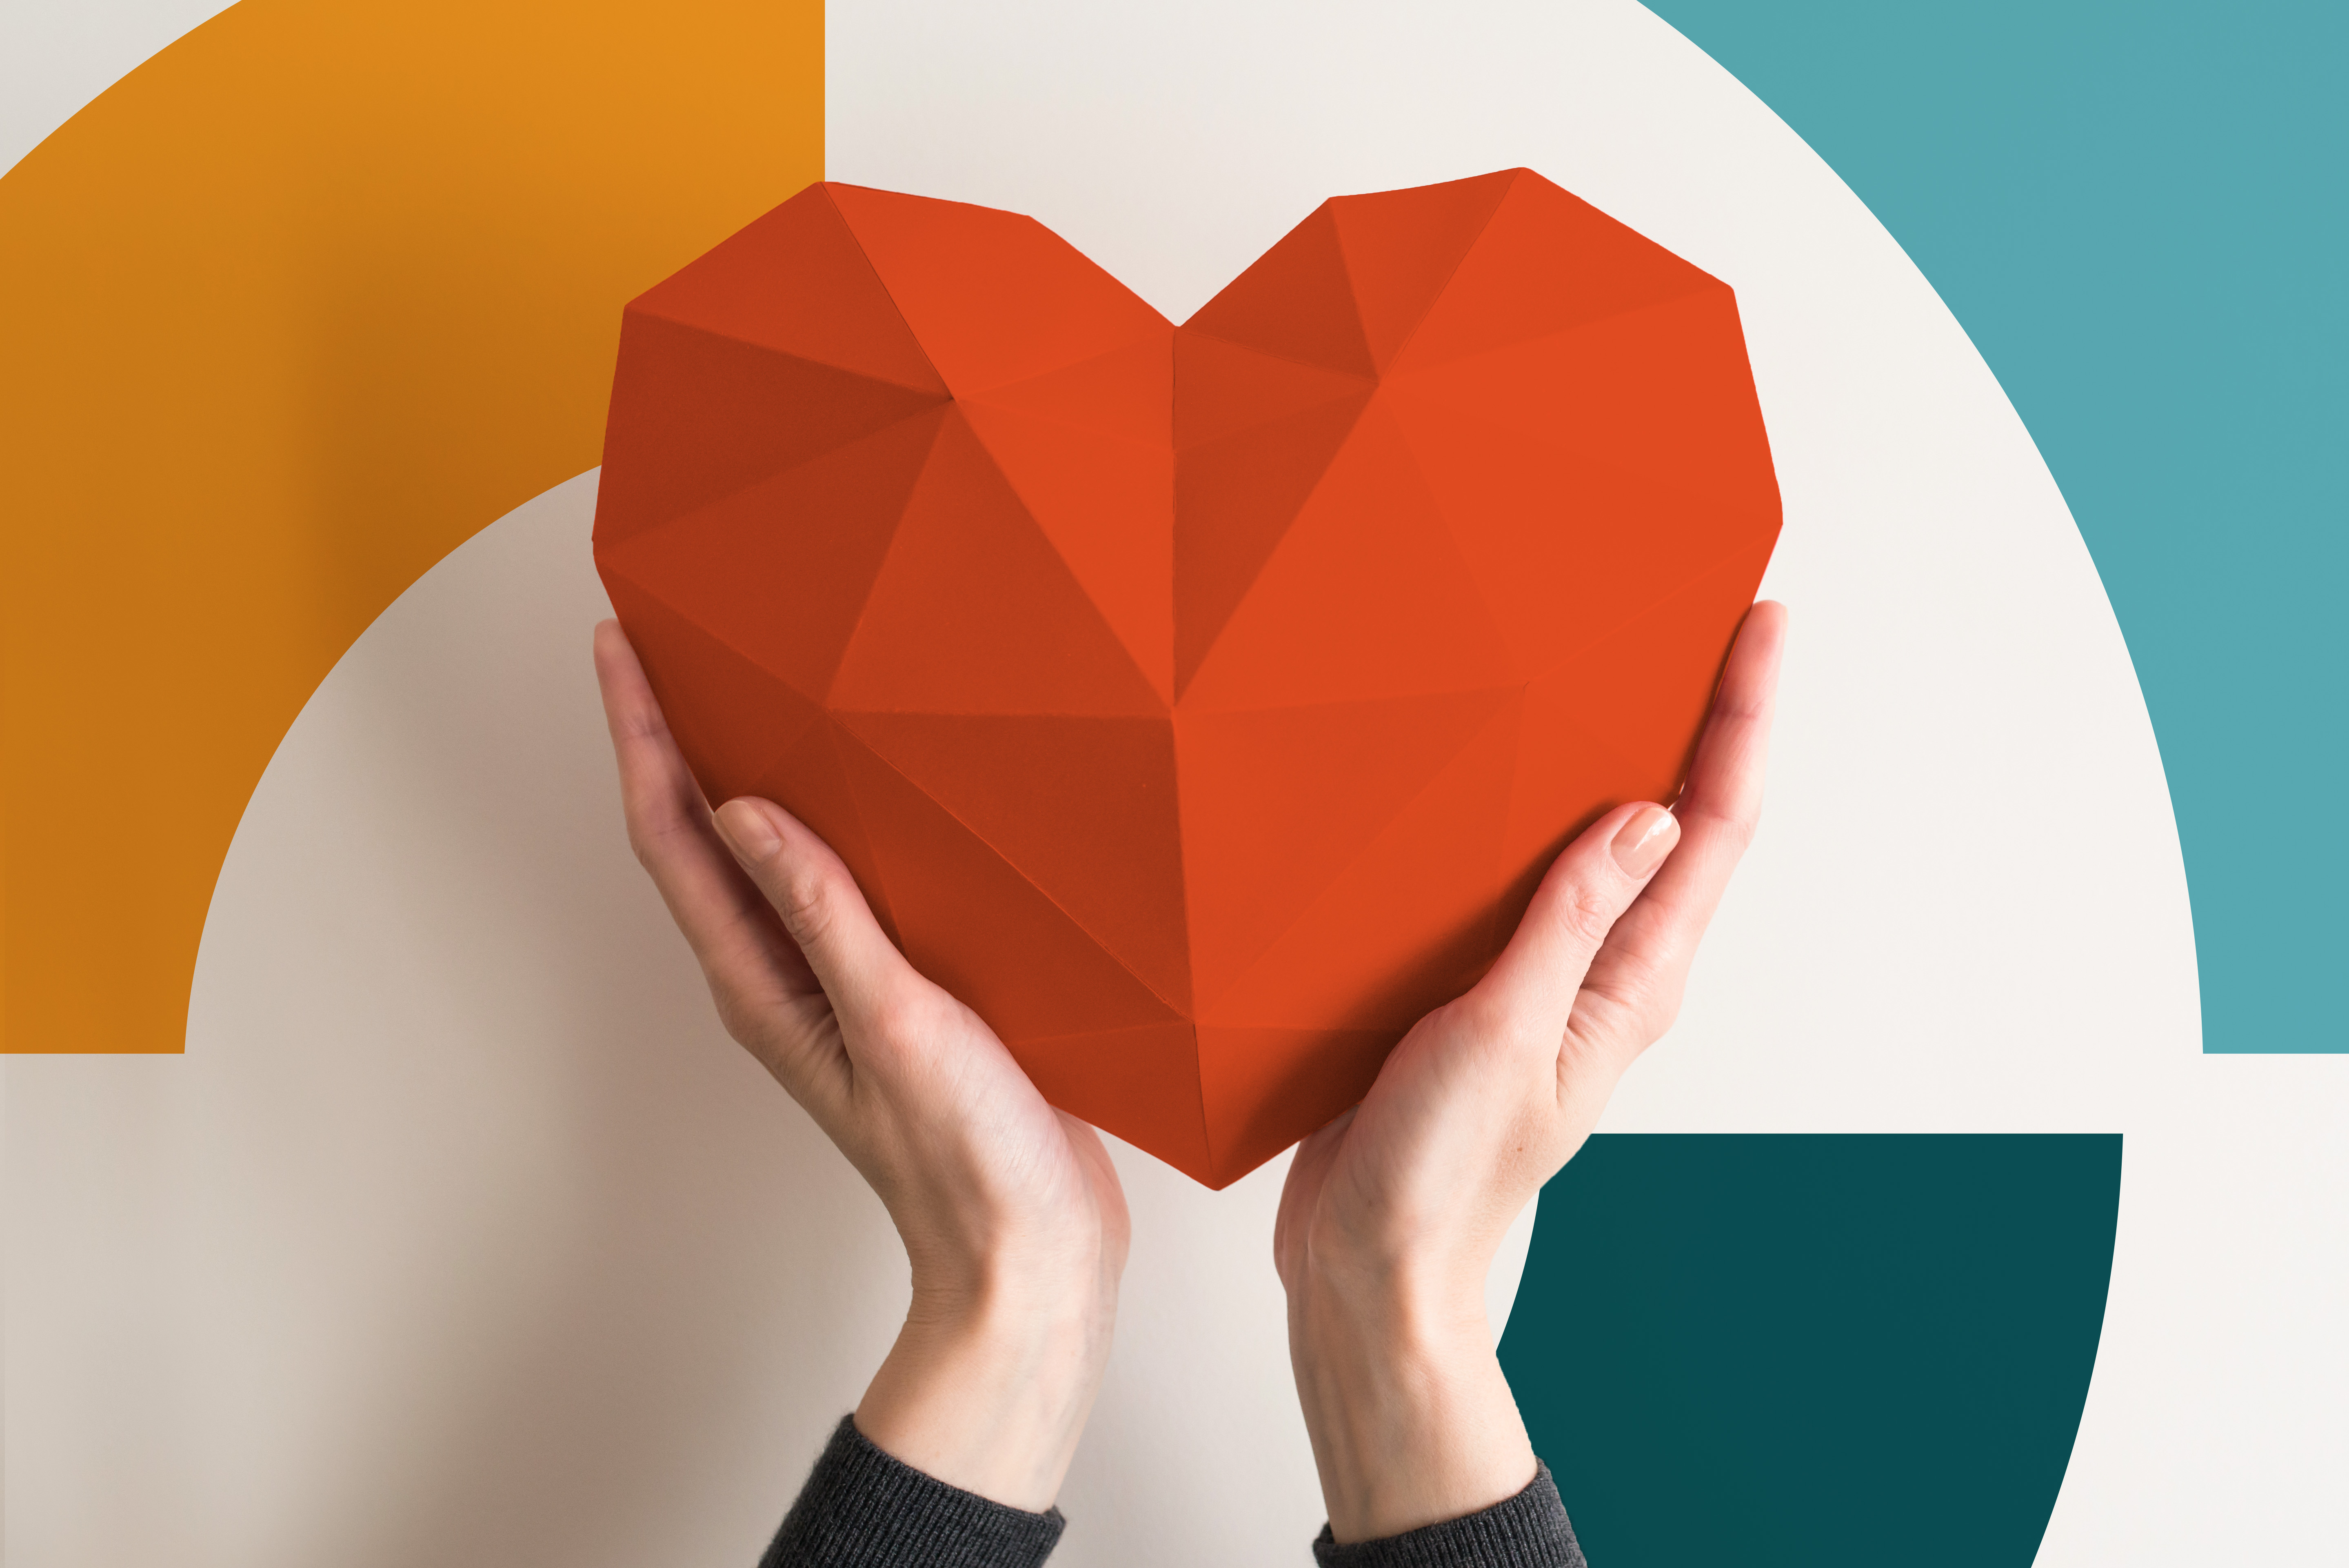 There\'s no better time than American Heart Month to read up on taking care of yours.